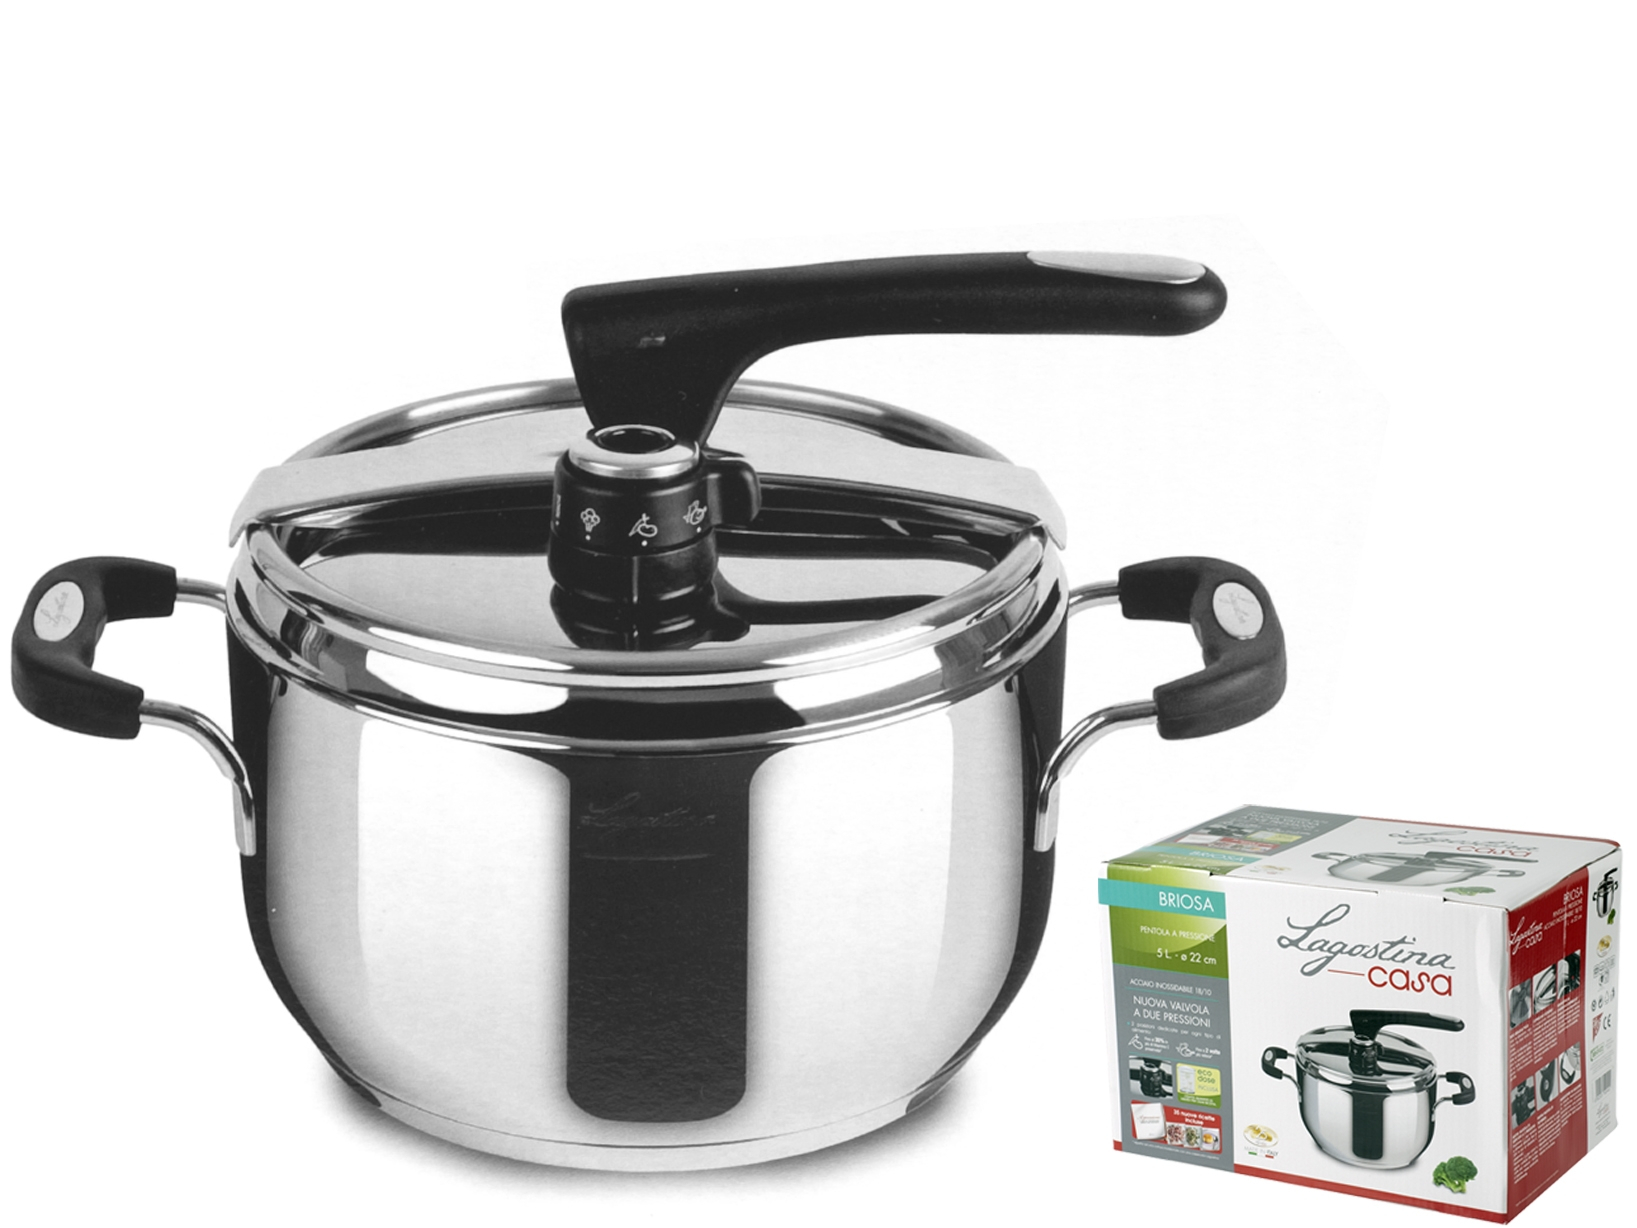 Buy Pressure Cooker Briosa Stainless Steel 3110505 | Italy2Us.com